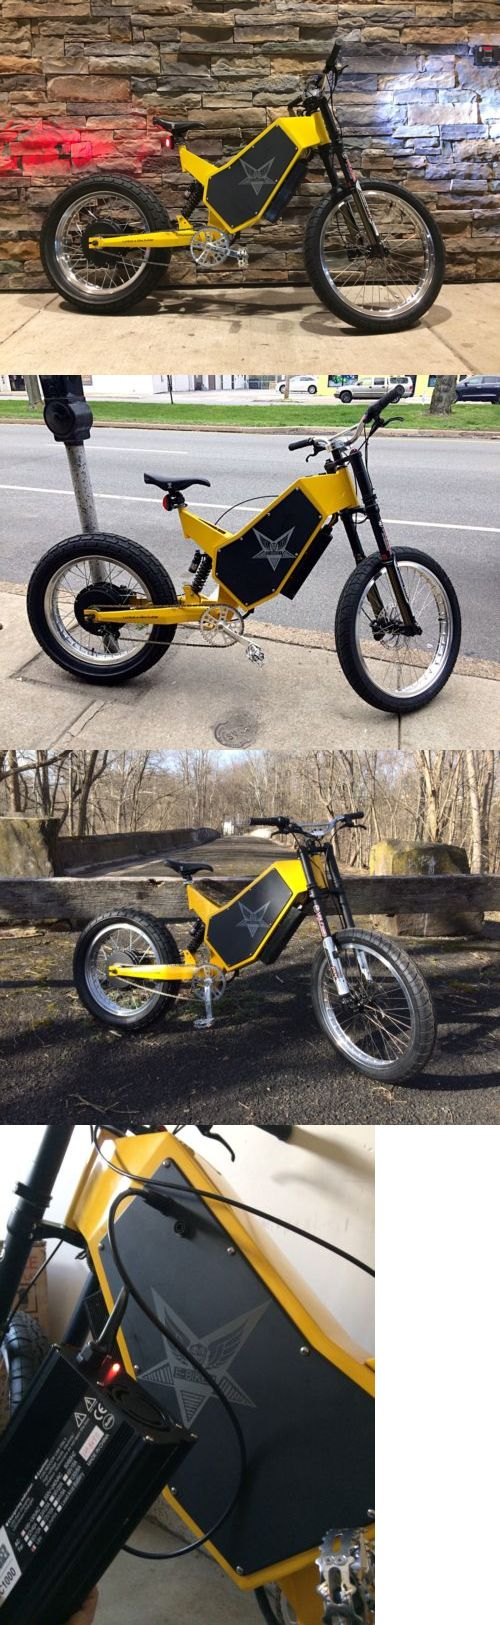 Electric Bicycle Components 177814: Custom Built 2017 Semar With Boost Ebike 134V 150A Controller Electric Bike -> BUY IT NOW ONLY: $8500 on eBay!